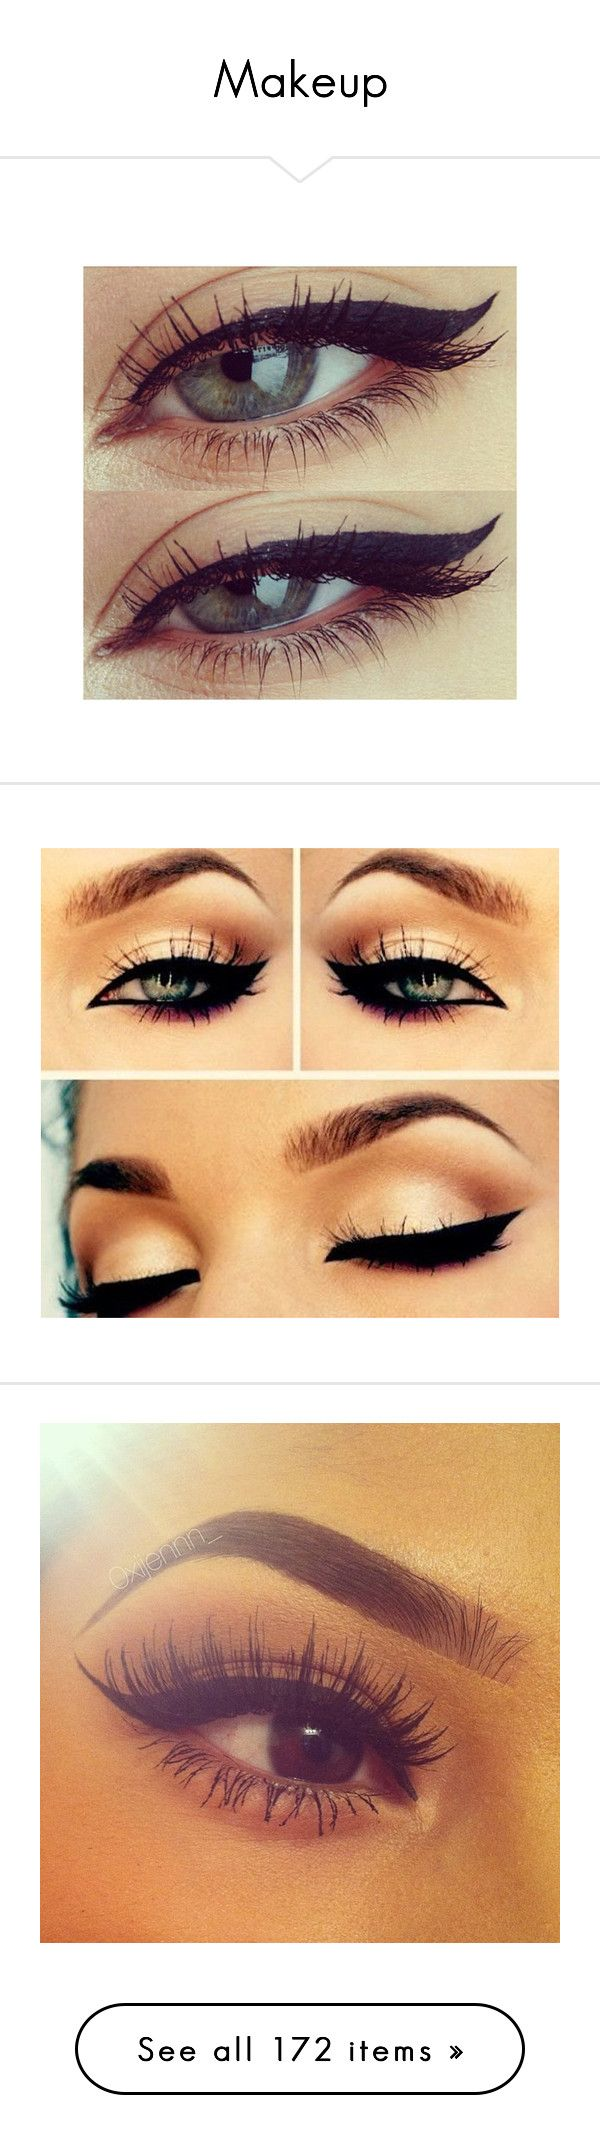 """""""Makeup"""" by insanenyc ❤ liked on Polyvore featuring beauty products, makeup, eye makeup, eyes, beauty, winged eye makeup, lip makeup, bobbi brown cosmetics, bobbi brown makeup and mac cosmetics"""